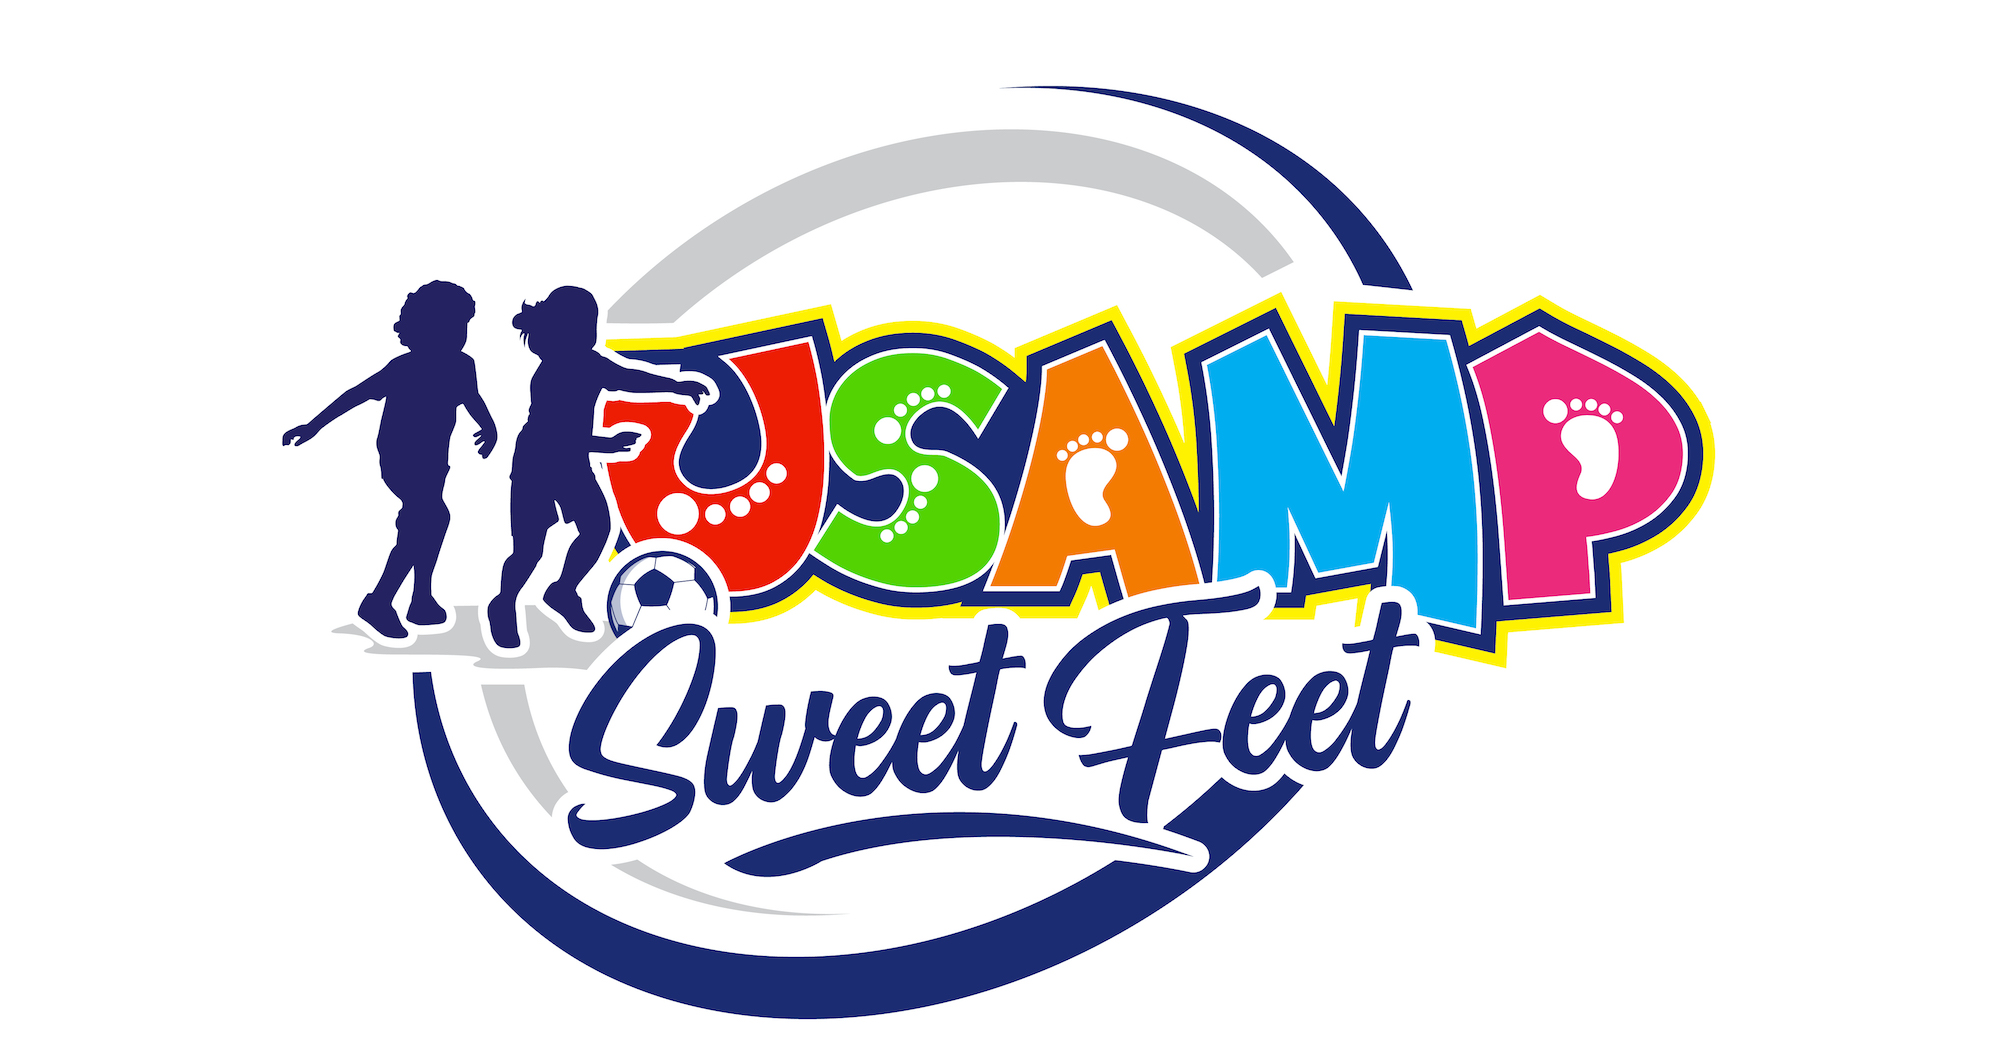 USA/MP Launches U6 & U8 Sweet Feet Program